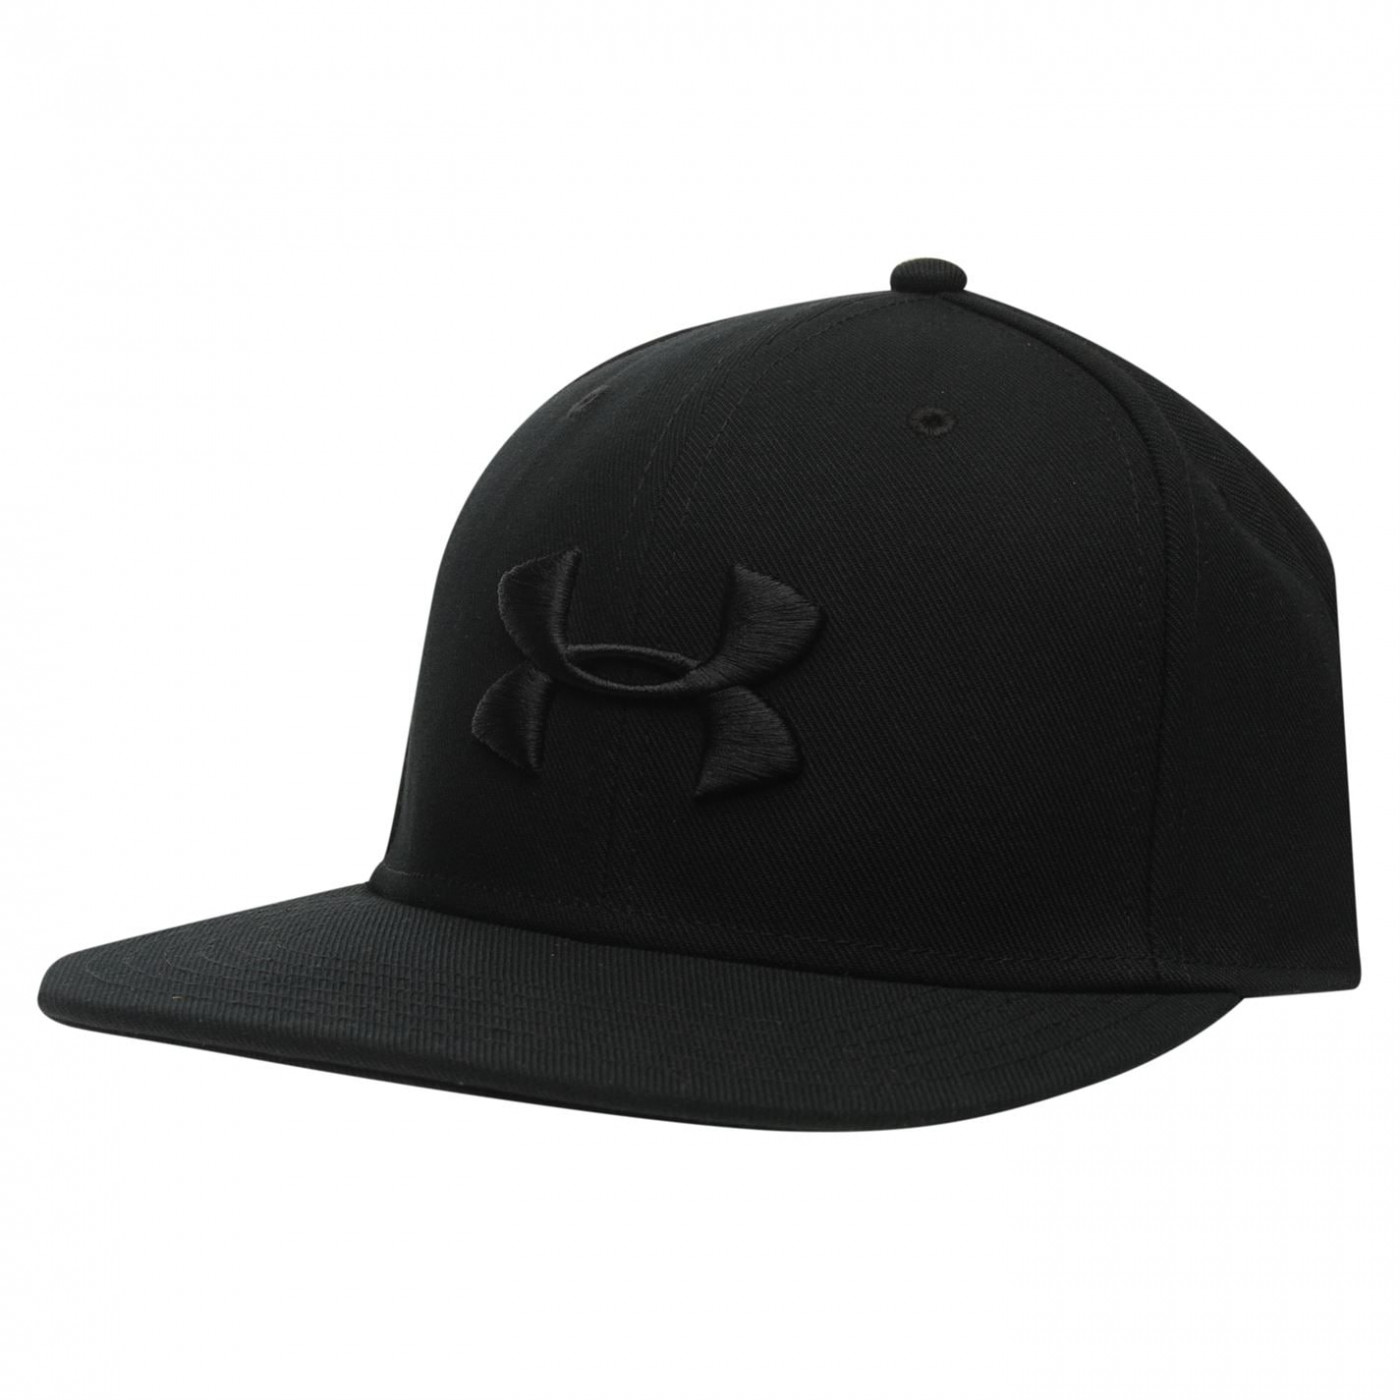 Under Armour - Mens Huddle Snapback 1177ffd124